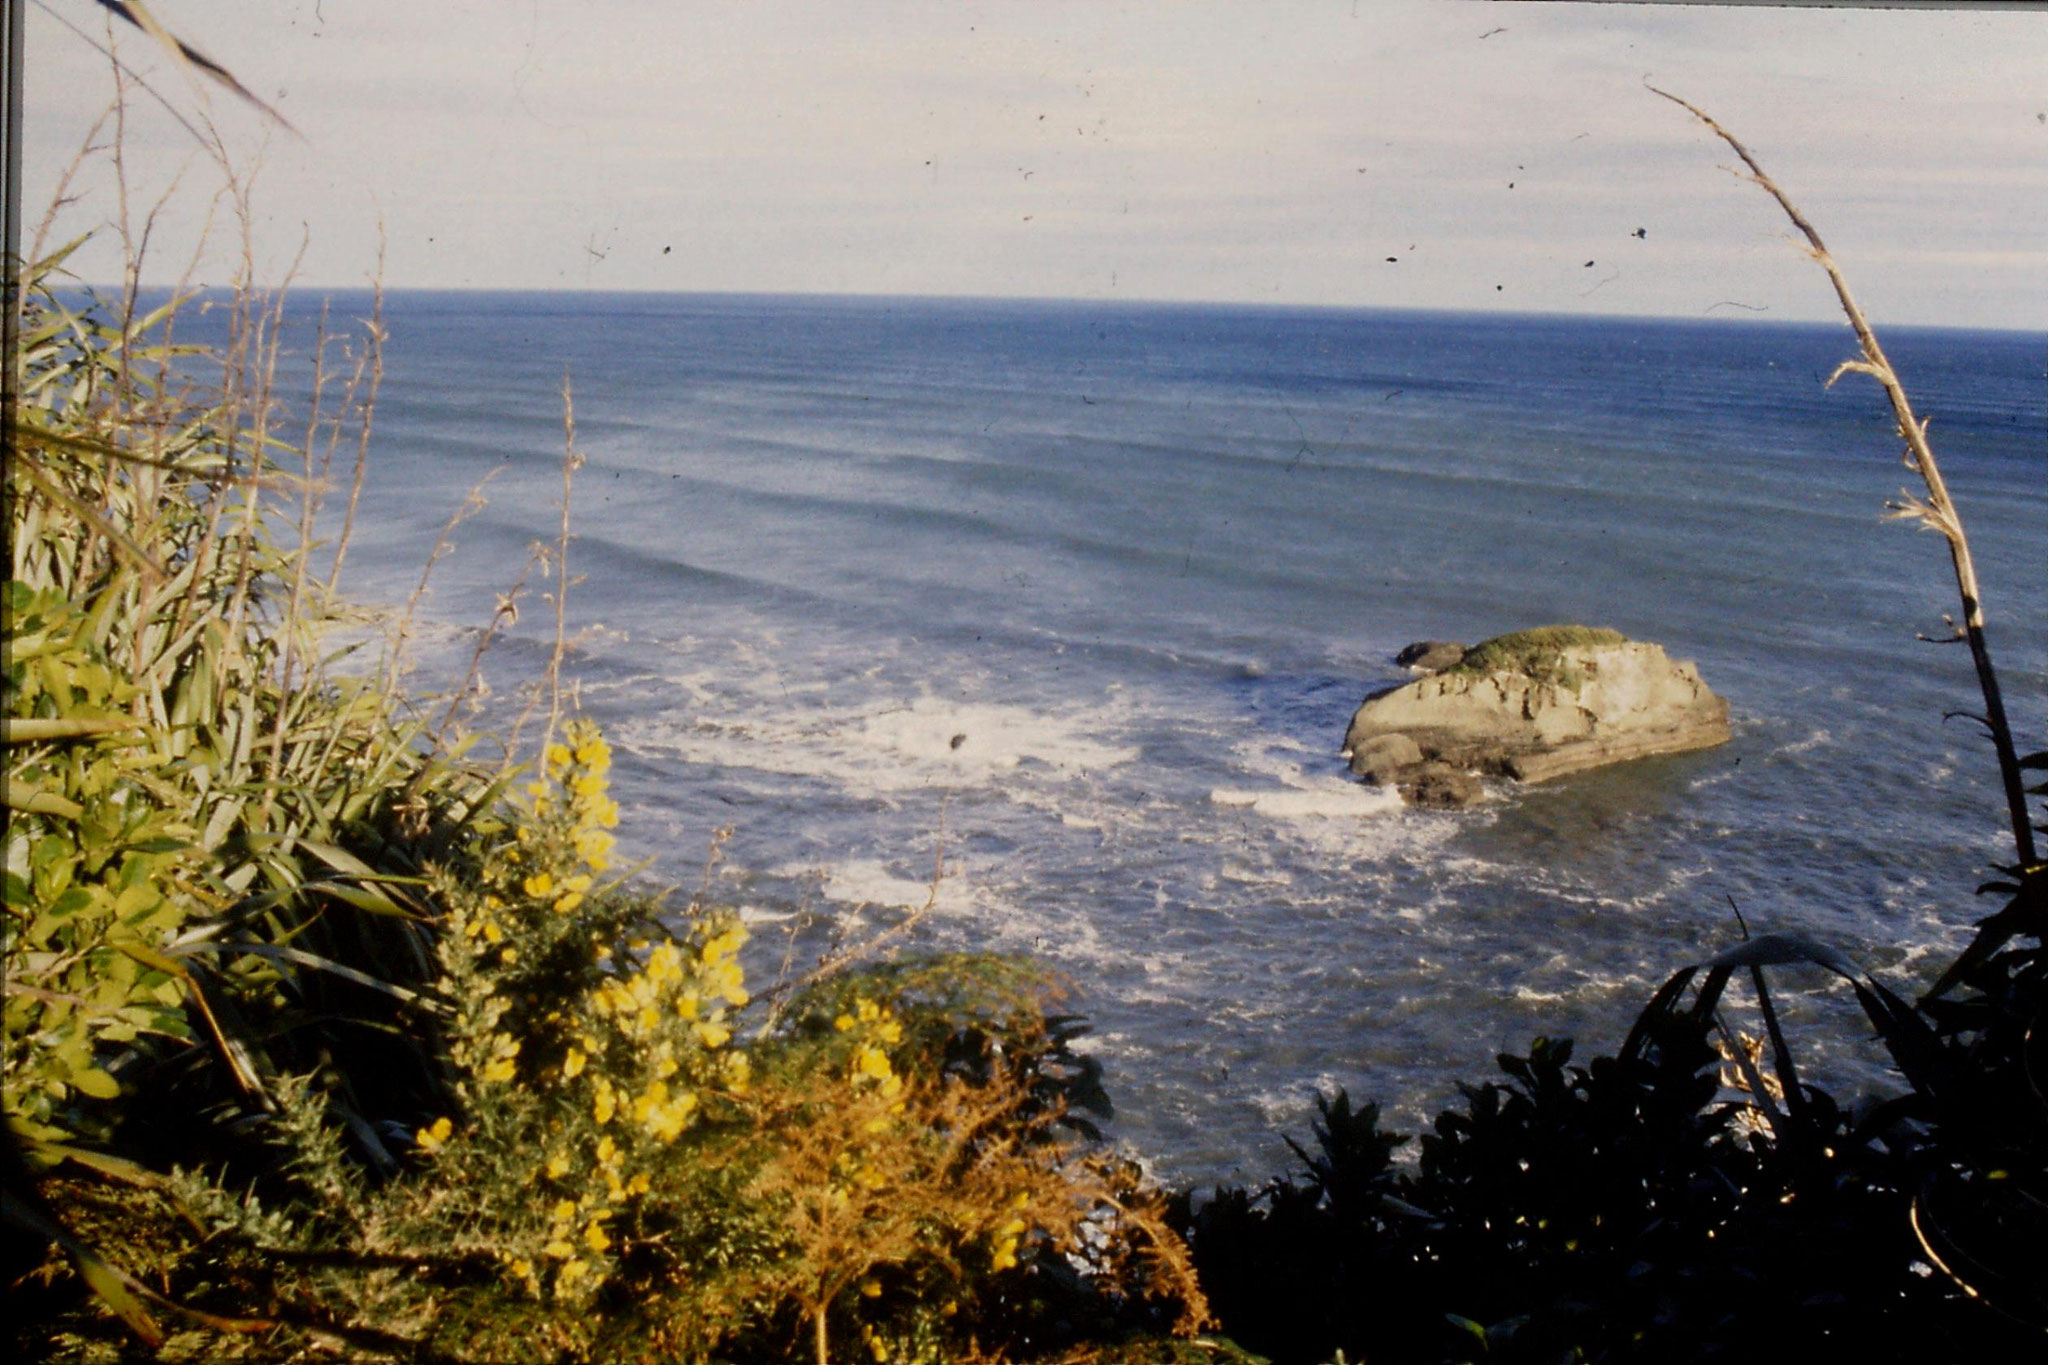 22/8/1990: 37: gorse and coastal rocks where we stayed the night